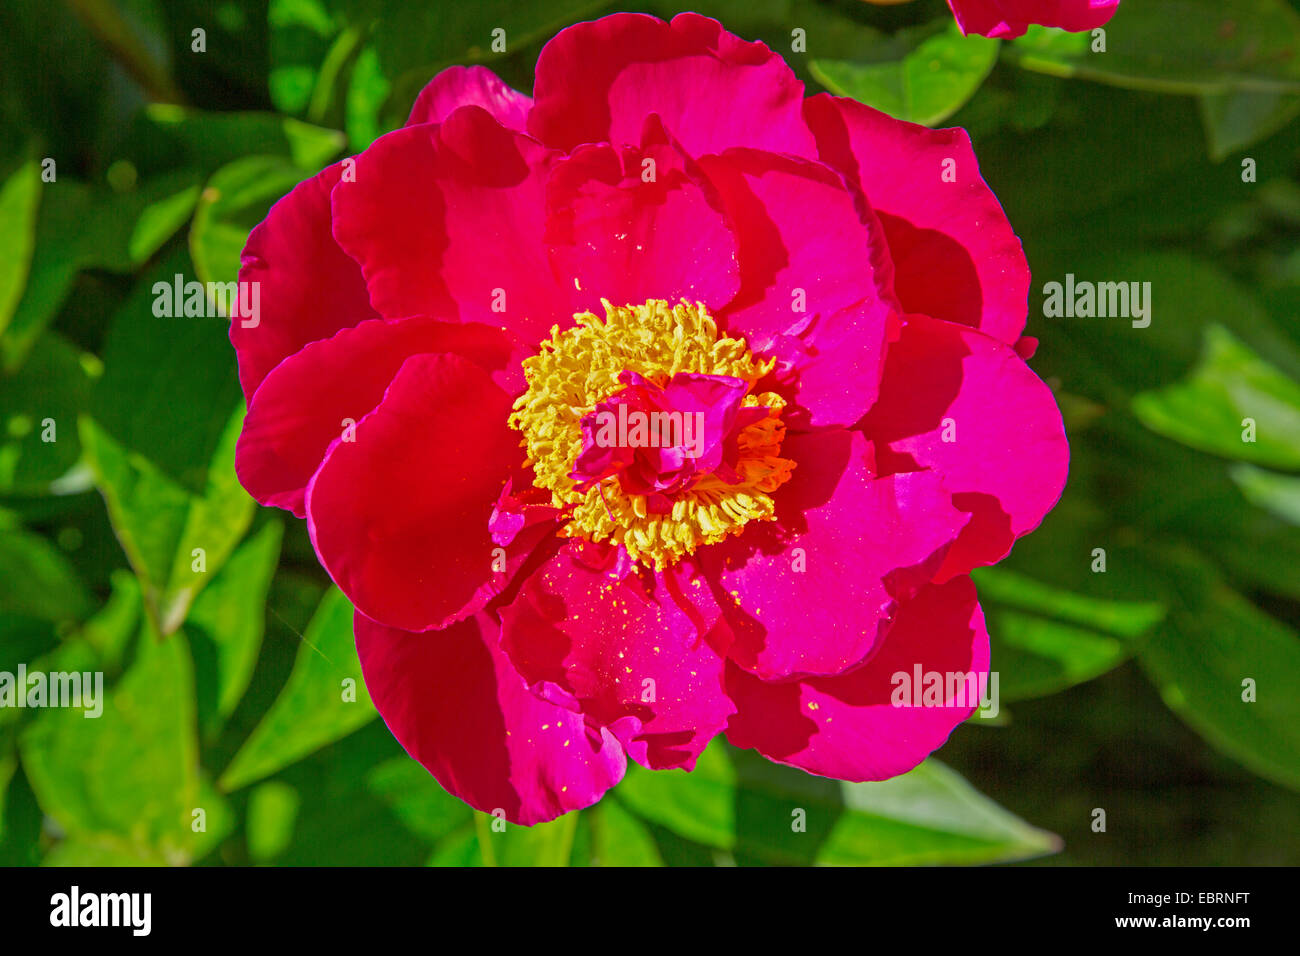 paeony (Paeonia officinalis), single flower - Stock Image